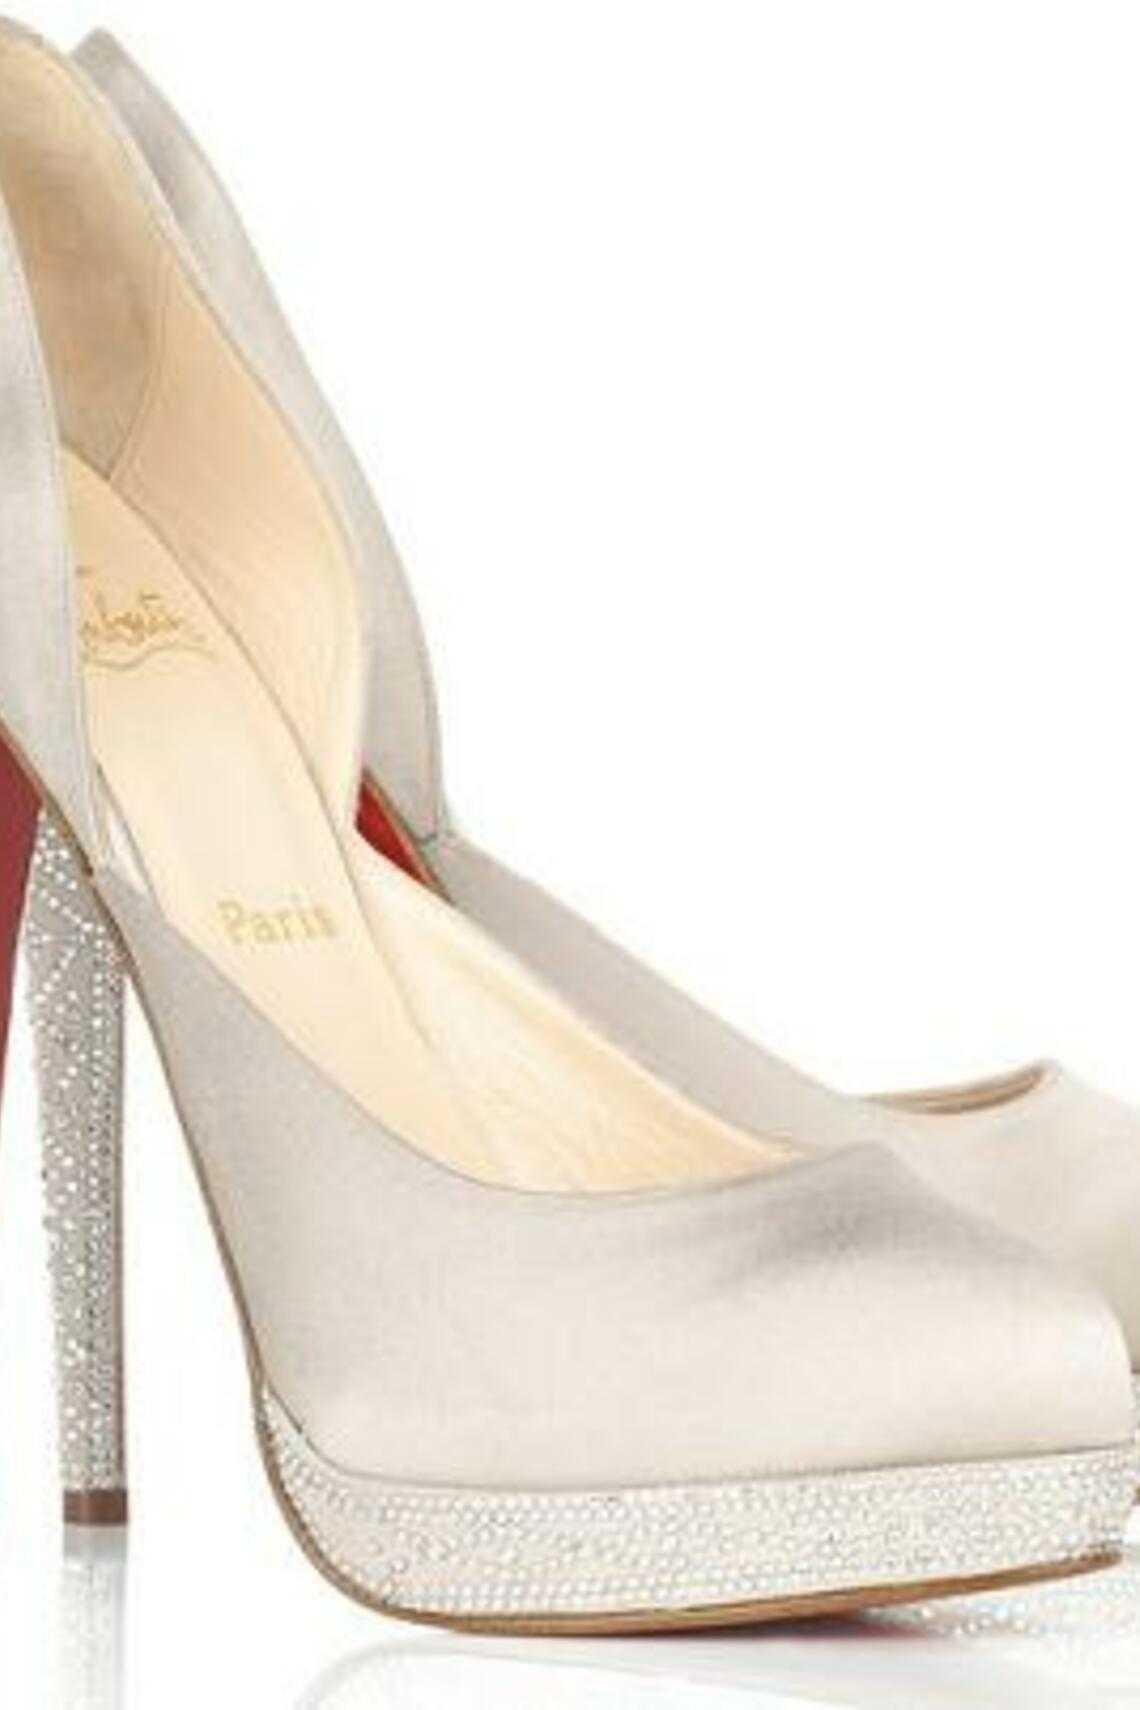 Christian Louboutin Eugenie Satin Pumps, $1,875